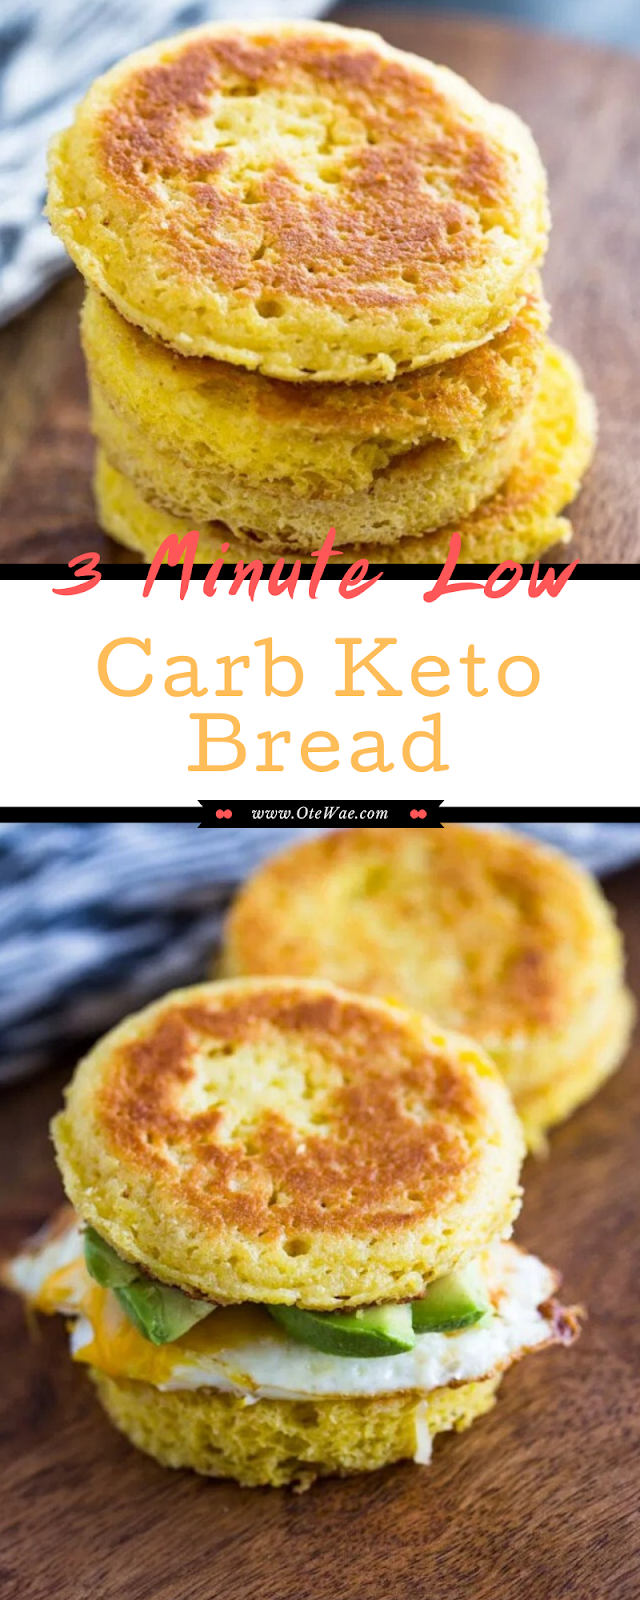 3 Minute Low Carb Keto Bread